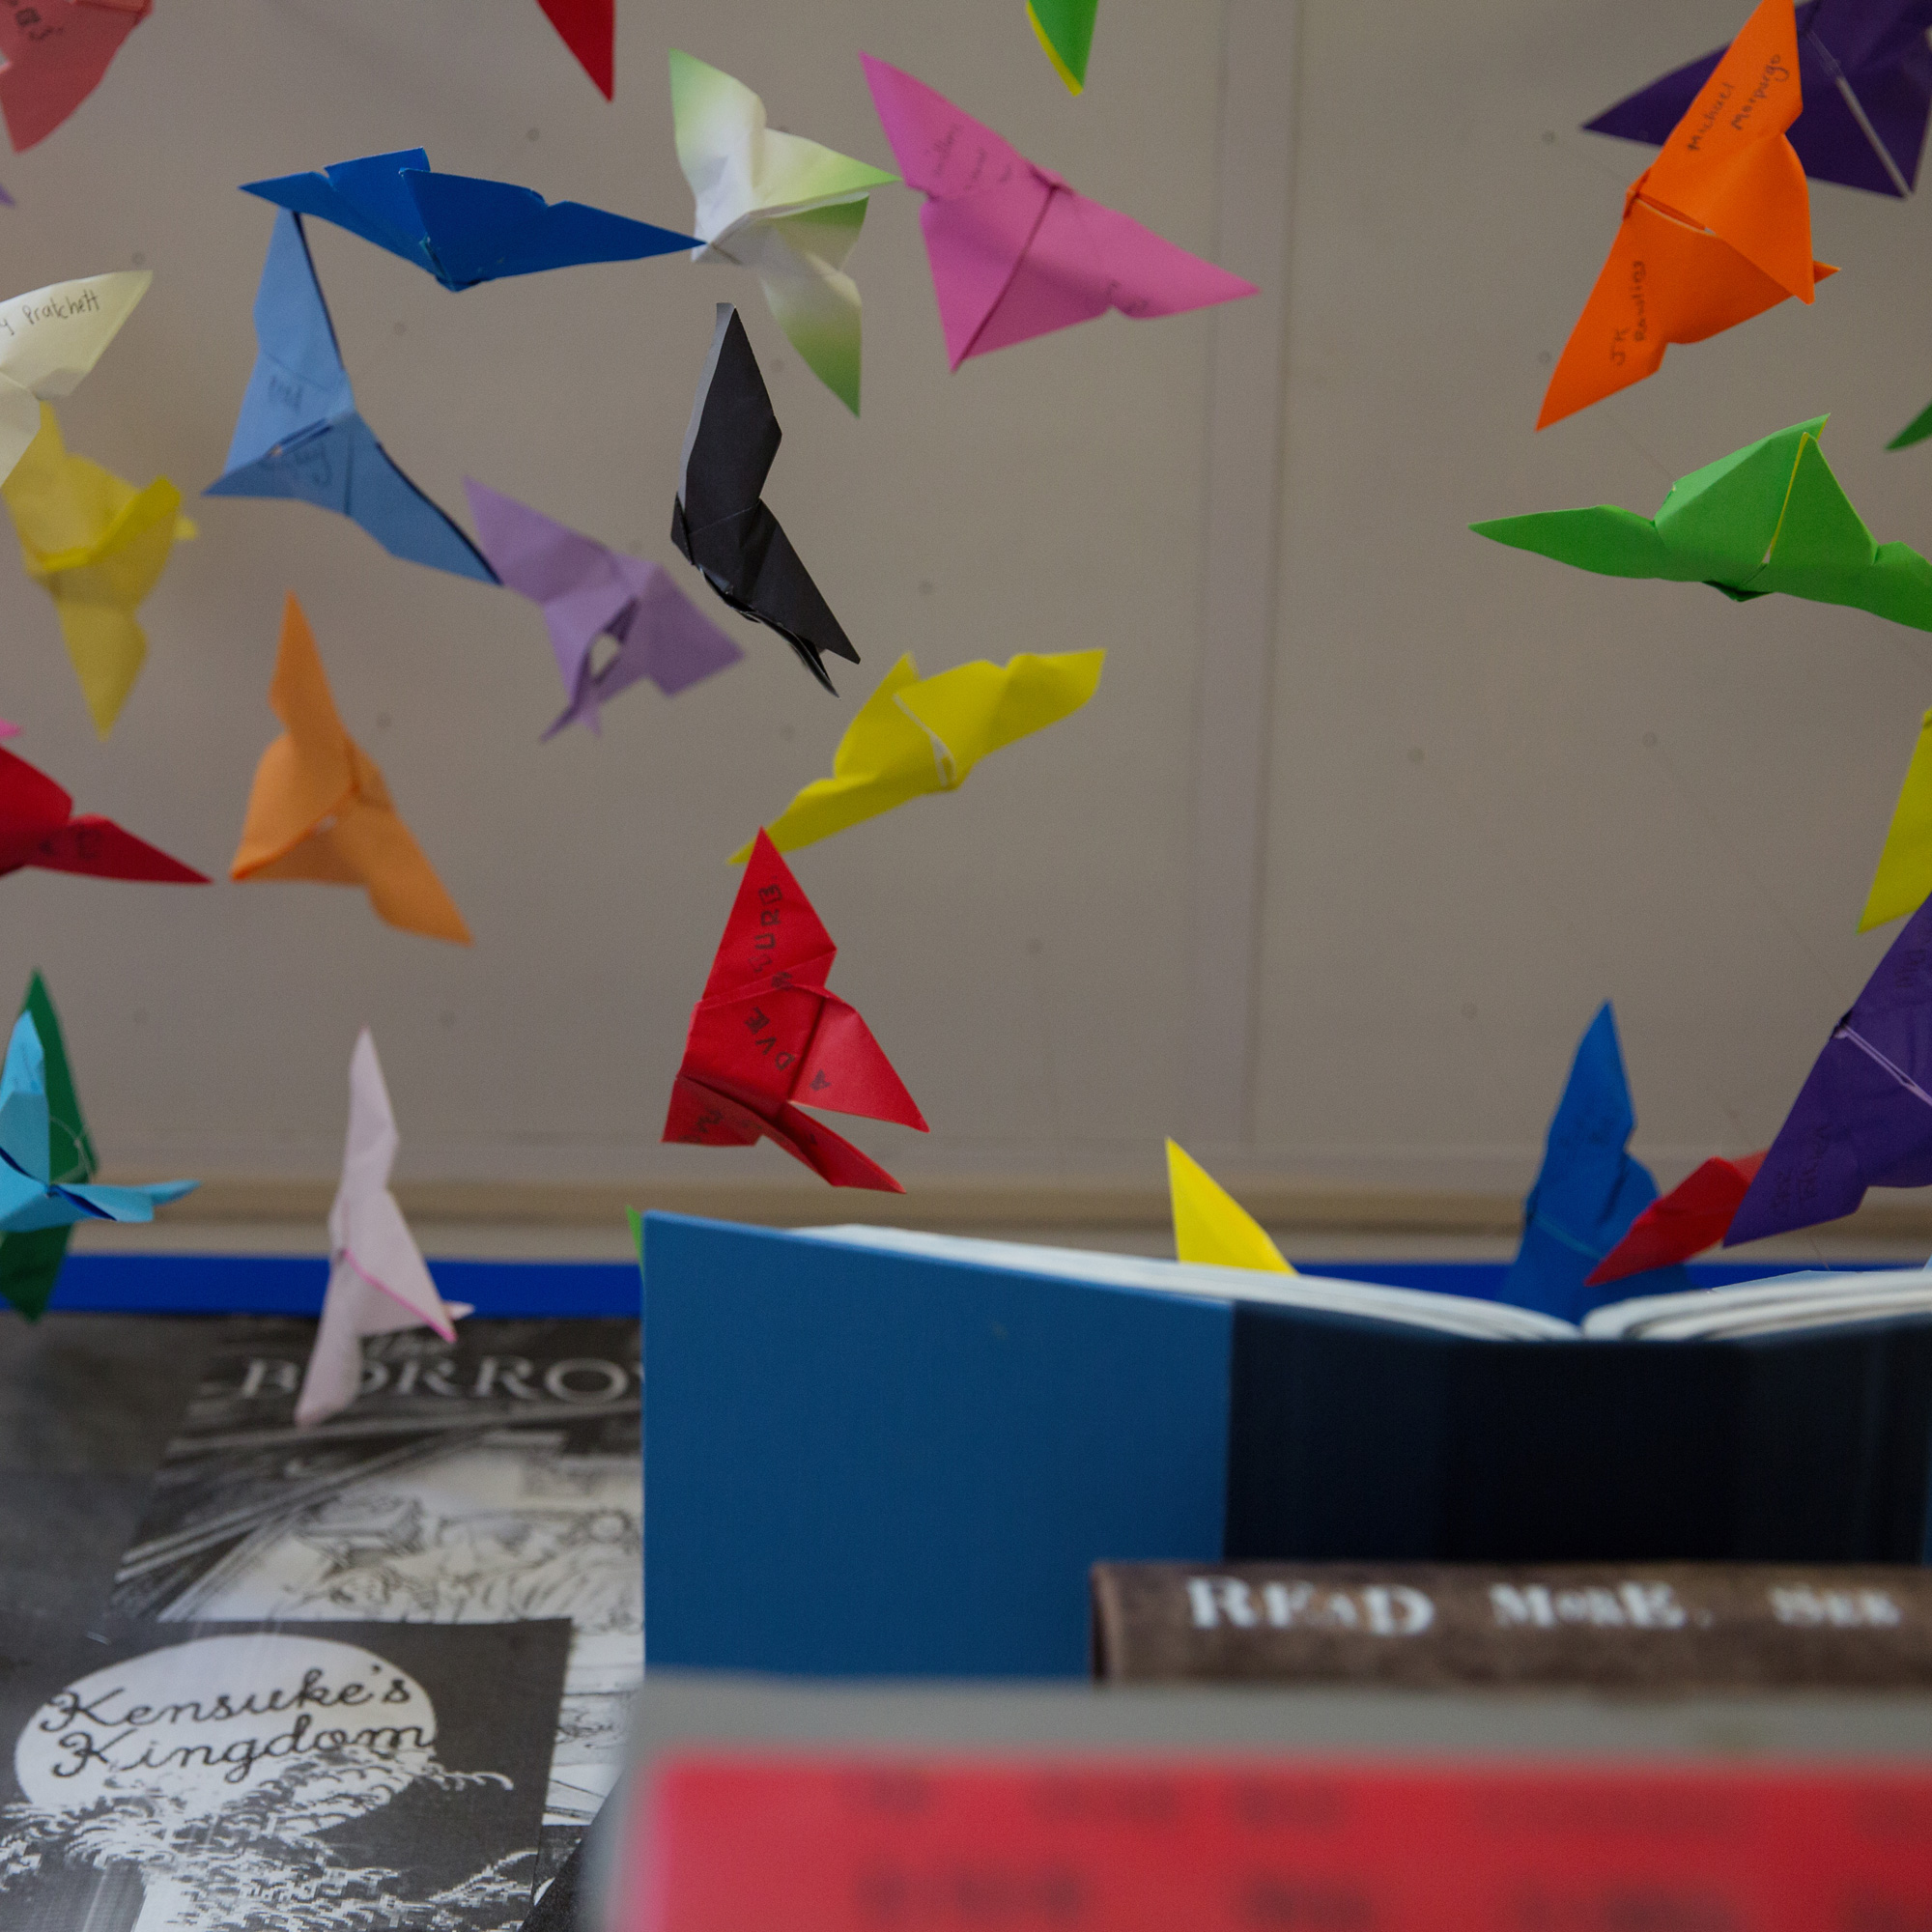 colourful origami butterflies bursting out of art book display